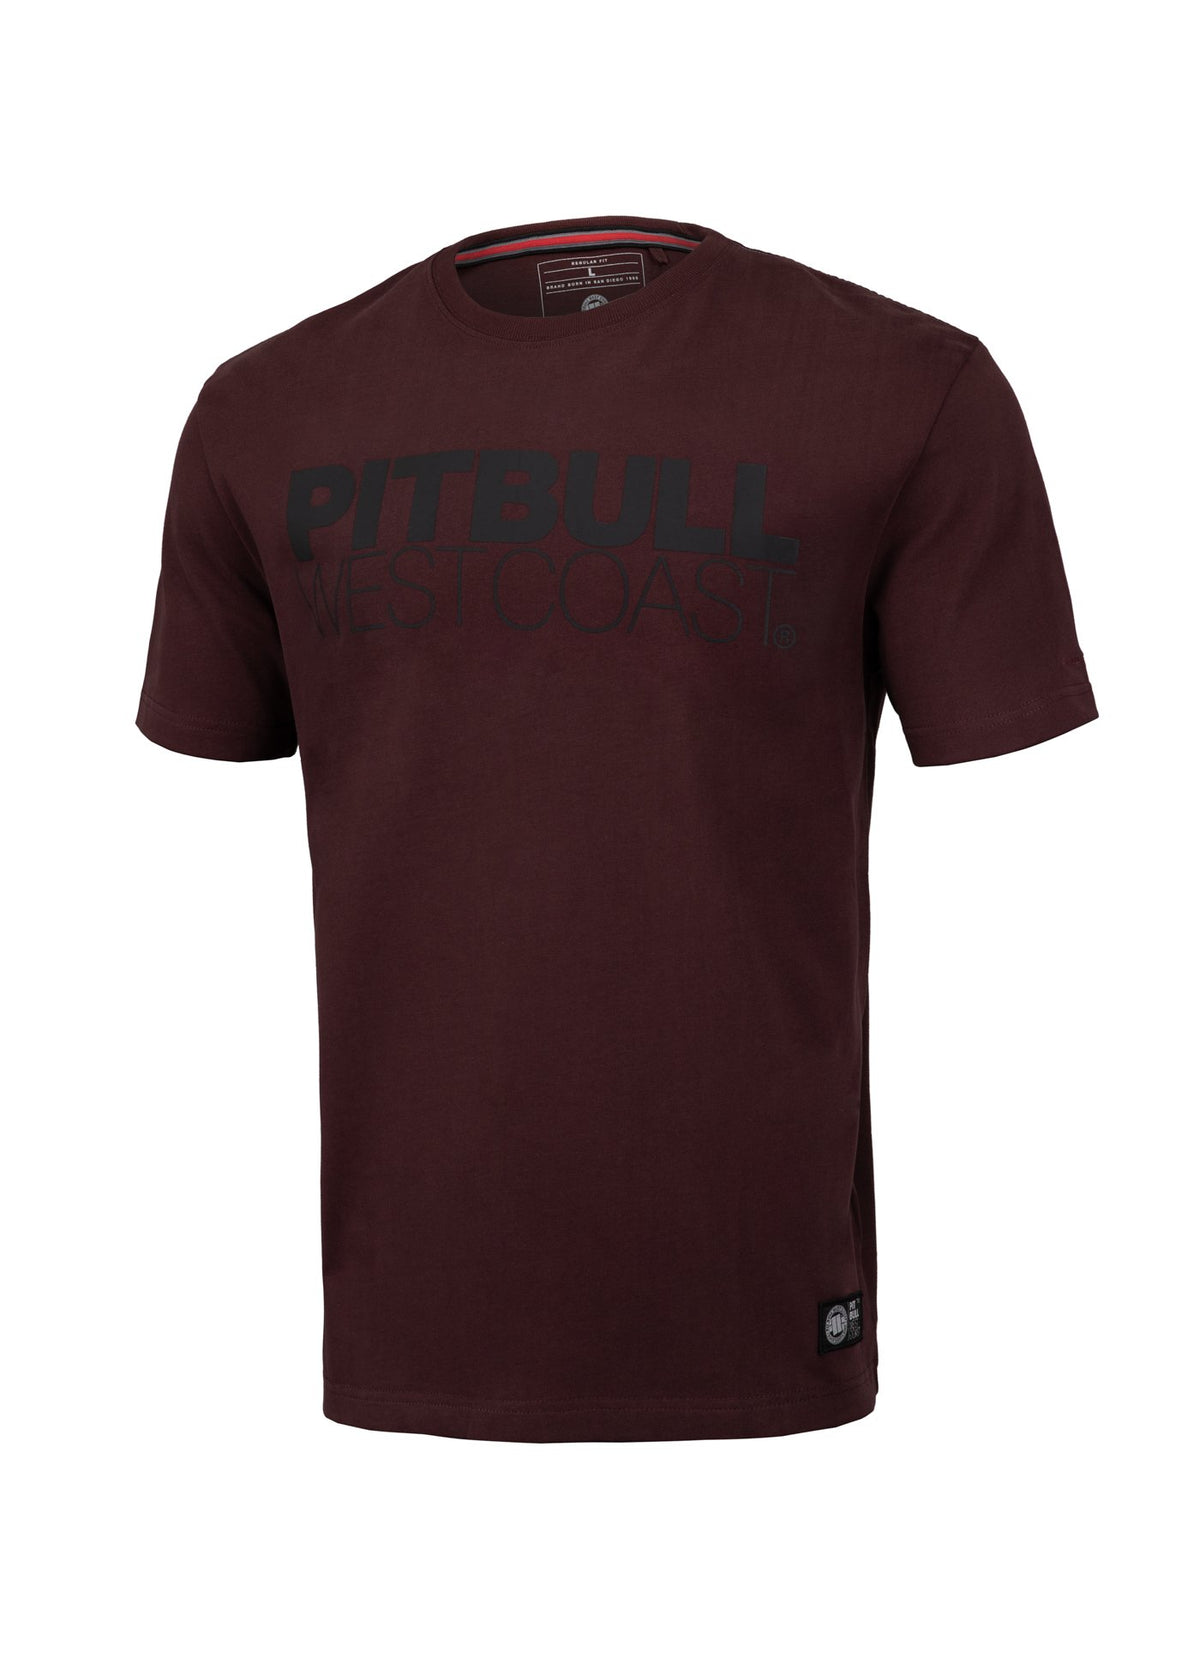 T-shirt Regular Fit TNT Burgundy - Pitbull West Coast U.S.A.